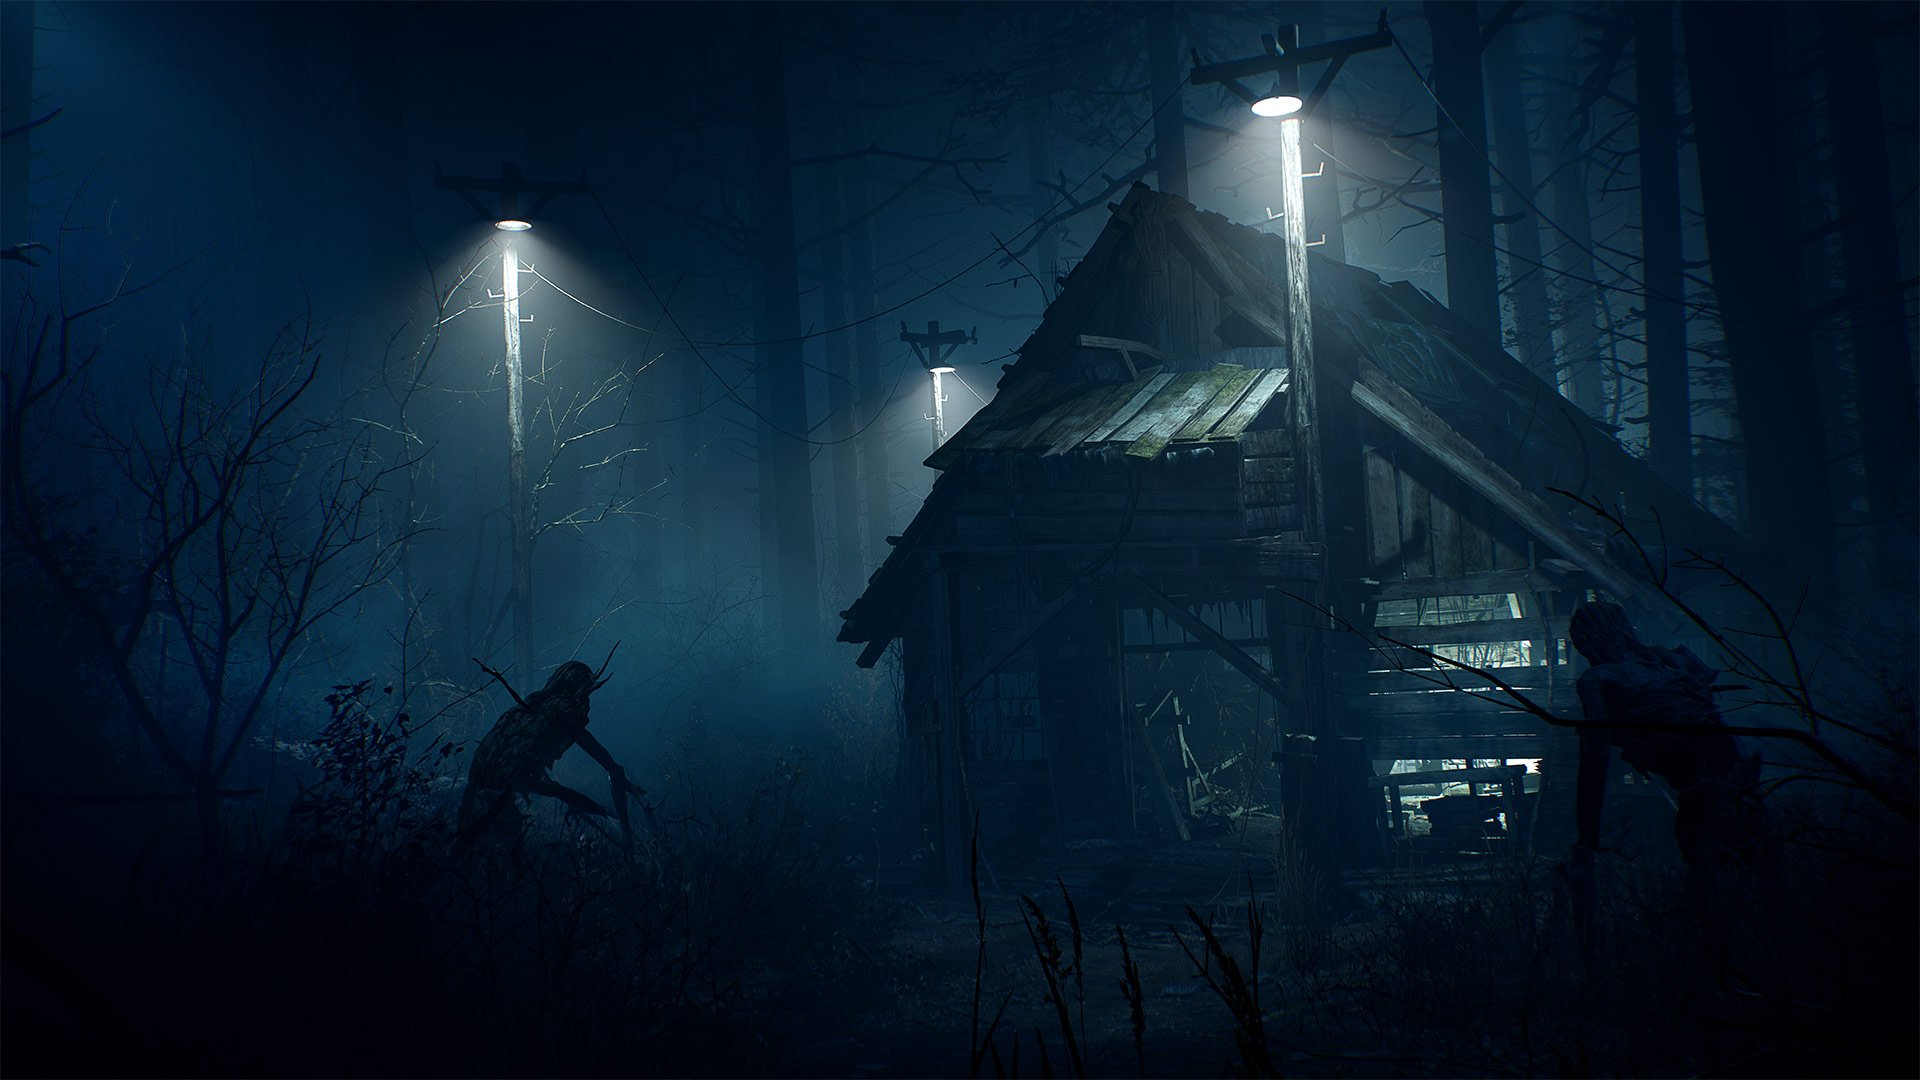 The new Blair Witch game hints at a new film from Lionsgate, and is connected to the cinematic universe, though you don't need to watch the films to enjoy the game according to Bloober Team.